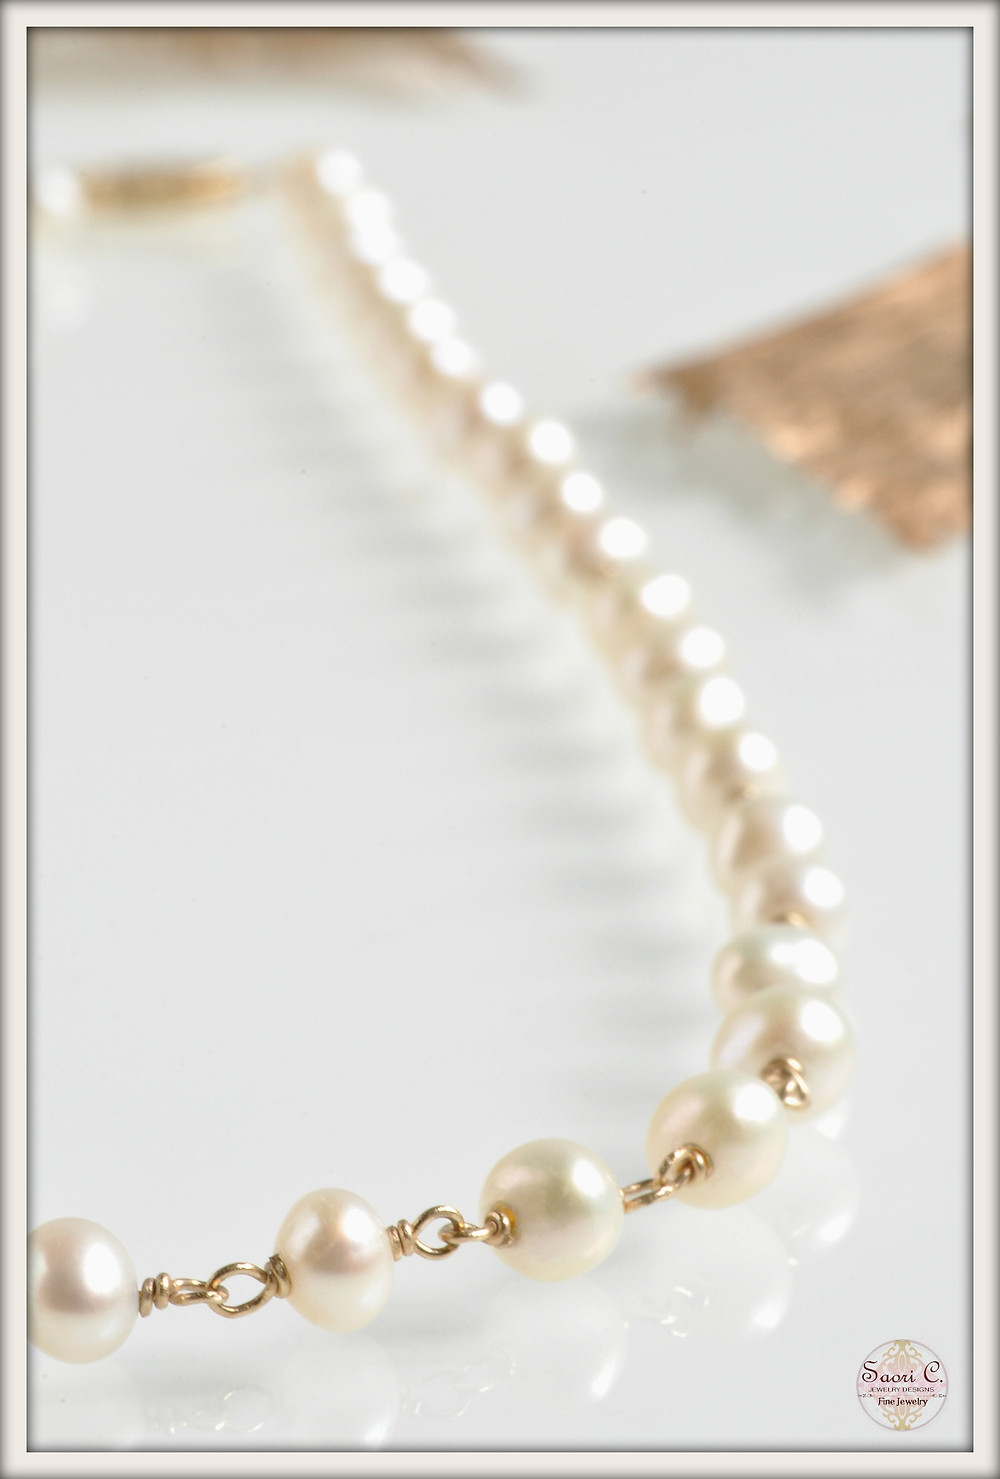 Classic White Pearl and 14 K Gold Necklace